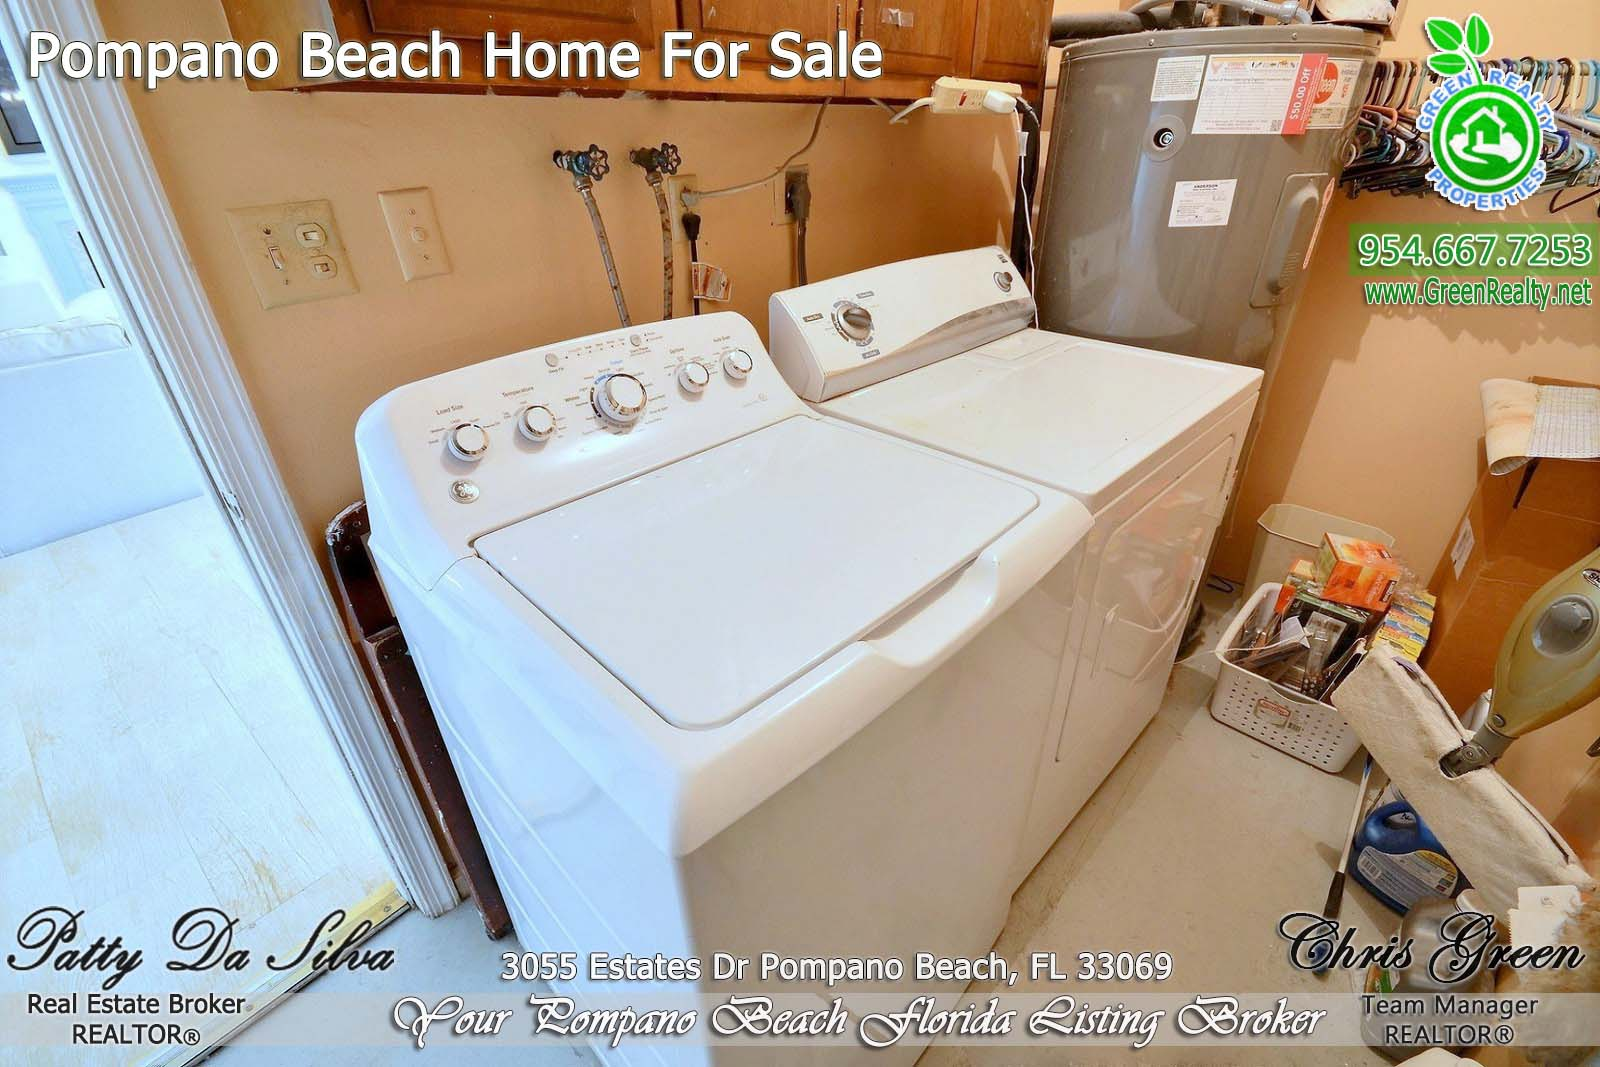 27 Real Estate For Sale in Pompano Beach (1)